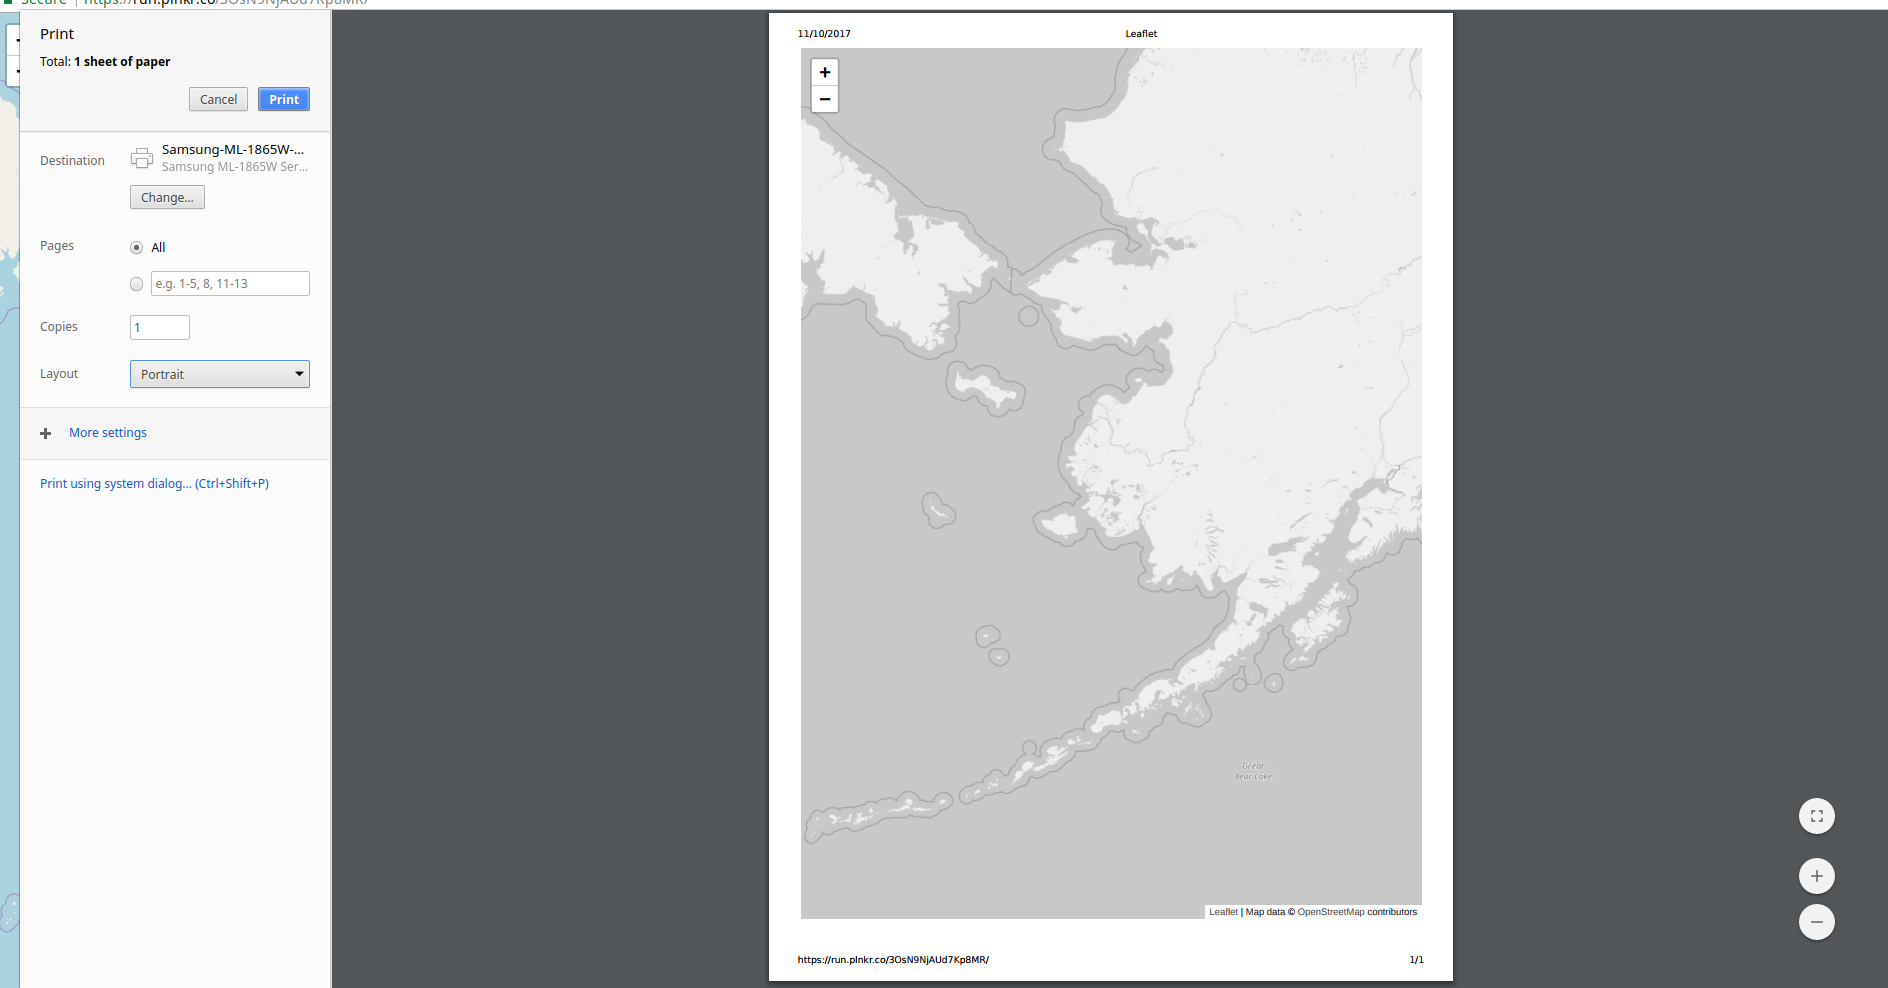 Printing leaflet from chrome: Unexplained patch of map shows